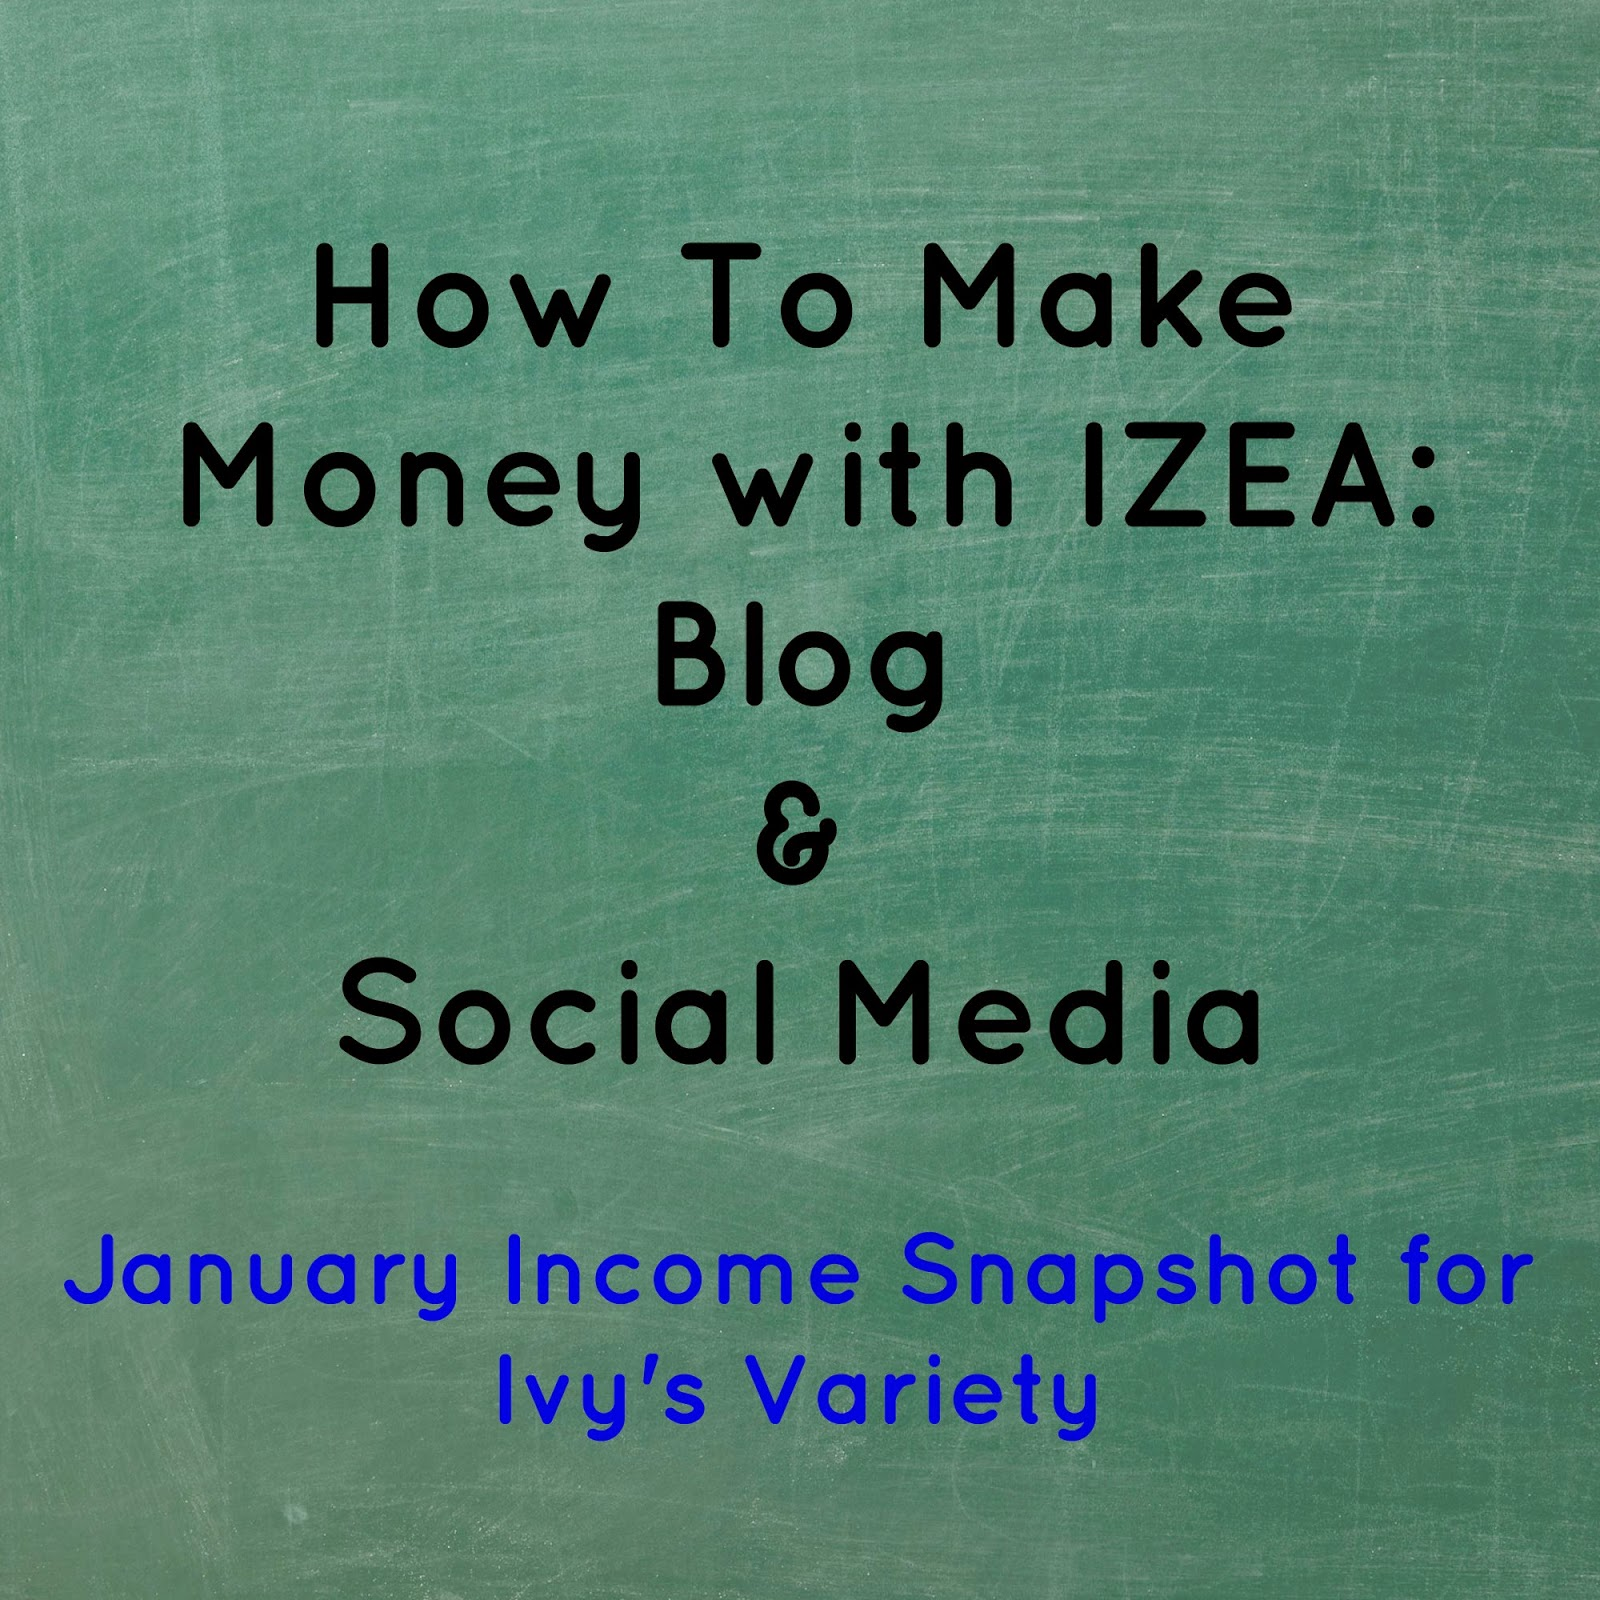 January IZEA income from twitter #ivysvariety